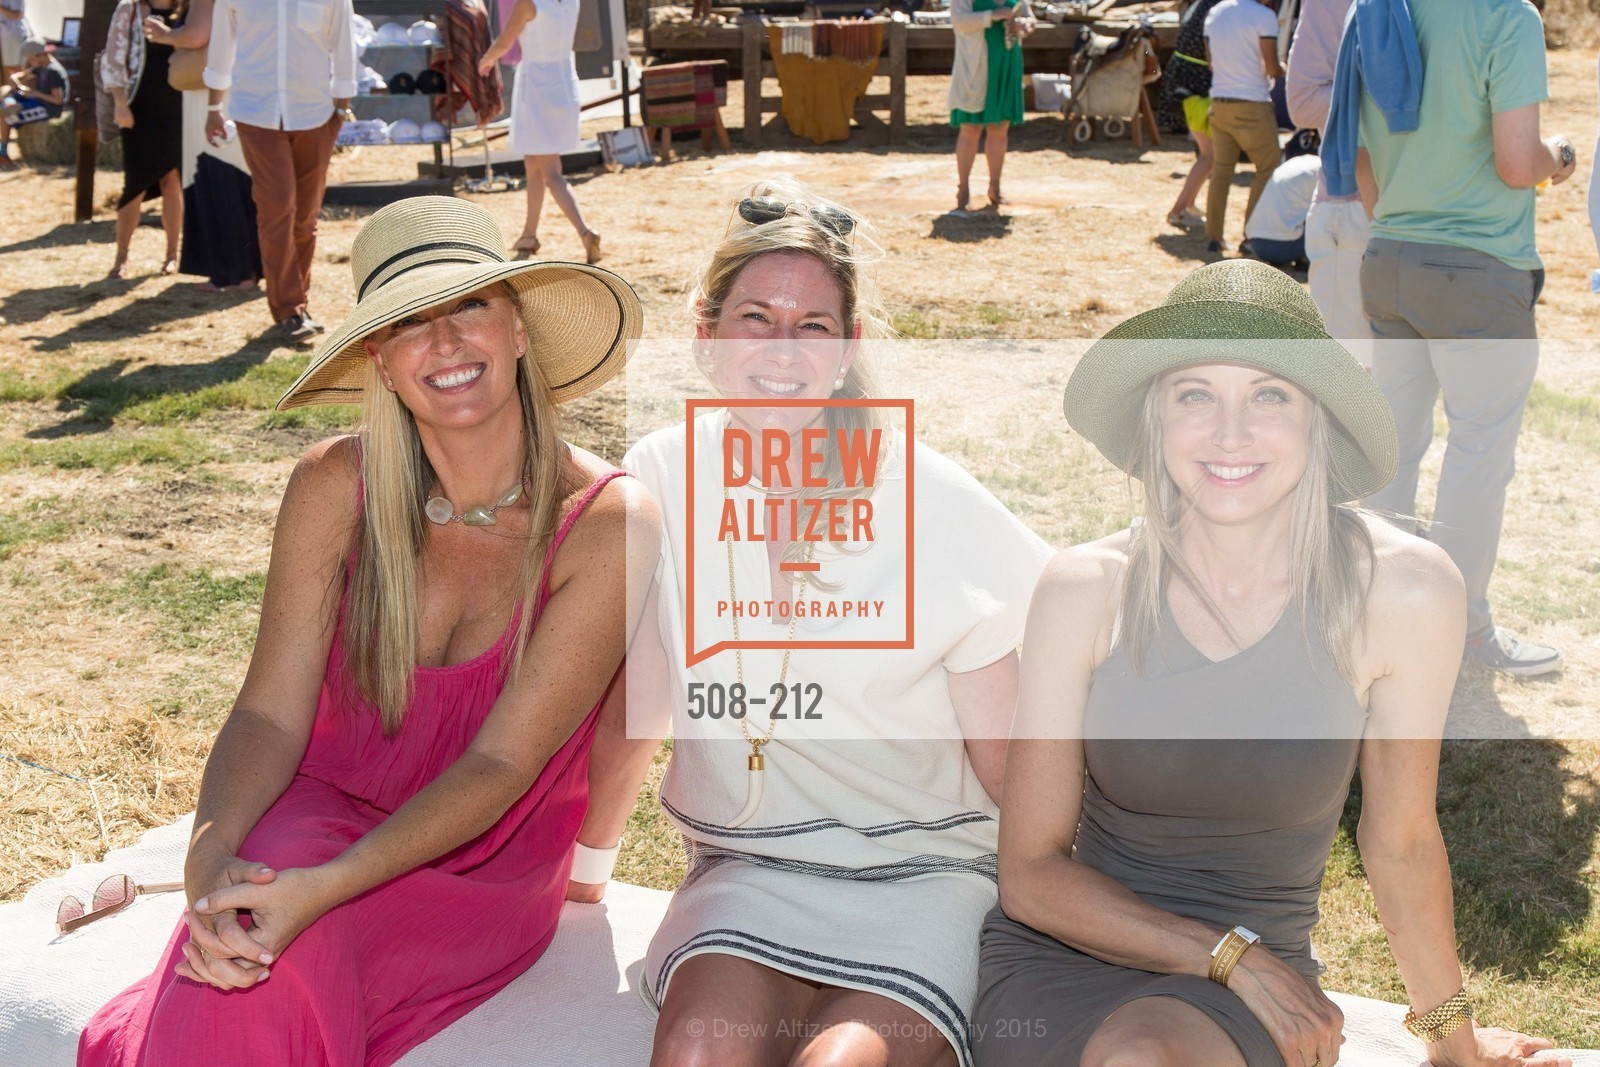 Kimber Hirsch, Katharine Ryan-Weiss, Holly Baxter, Stick & Ball Oyster Cup Polo Tournament, Cerro Pampa Polo Club, July 25th, 2015,Drew Altizer, Drew Altizer Photography, full-service agency, private events, San Francisco photographer, photographer california